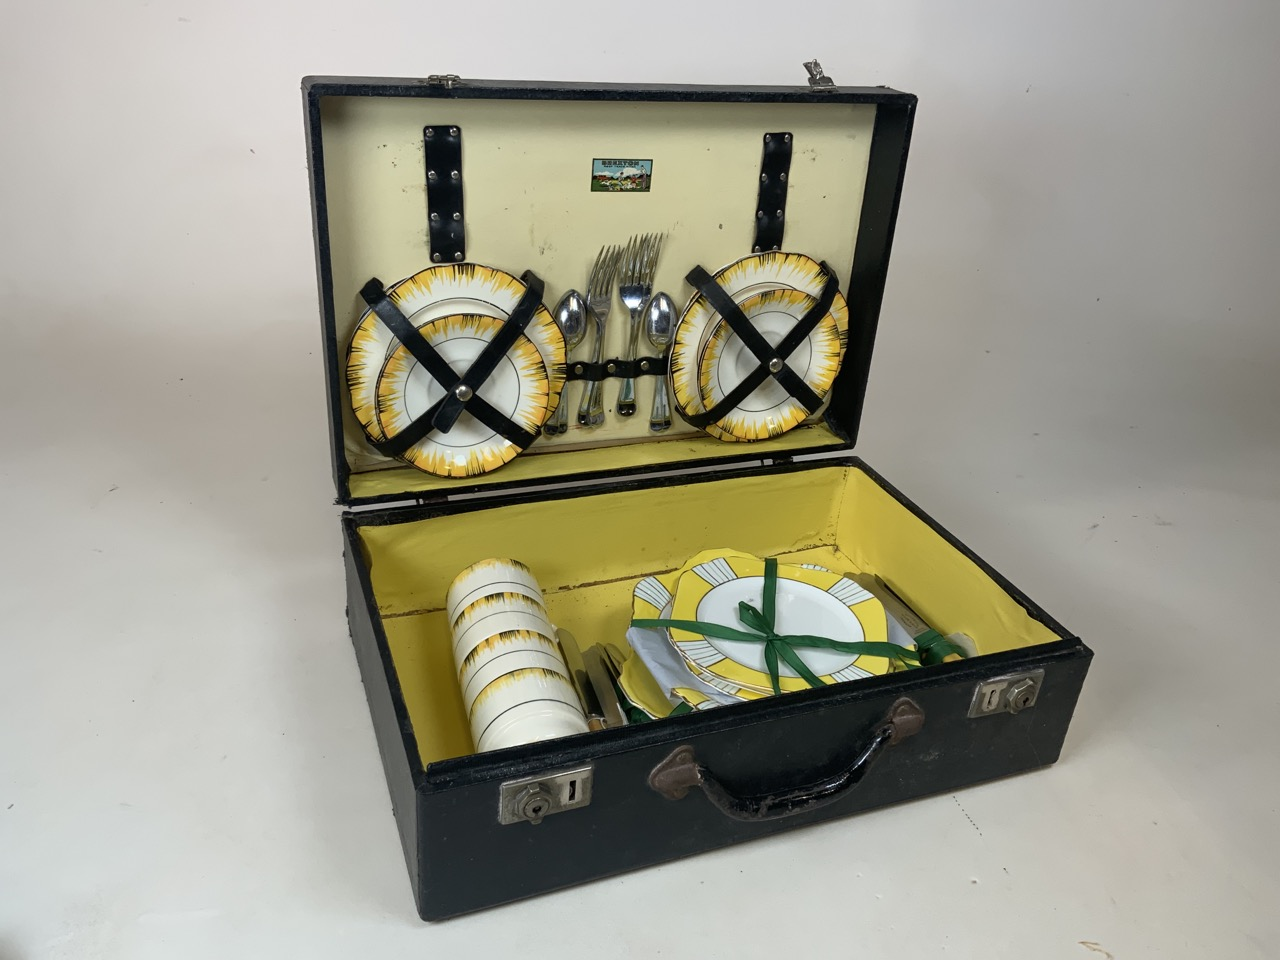 An early Brexton picnic hamper with four place settings in wooden box with yellow interior. Original